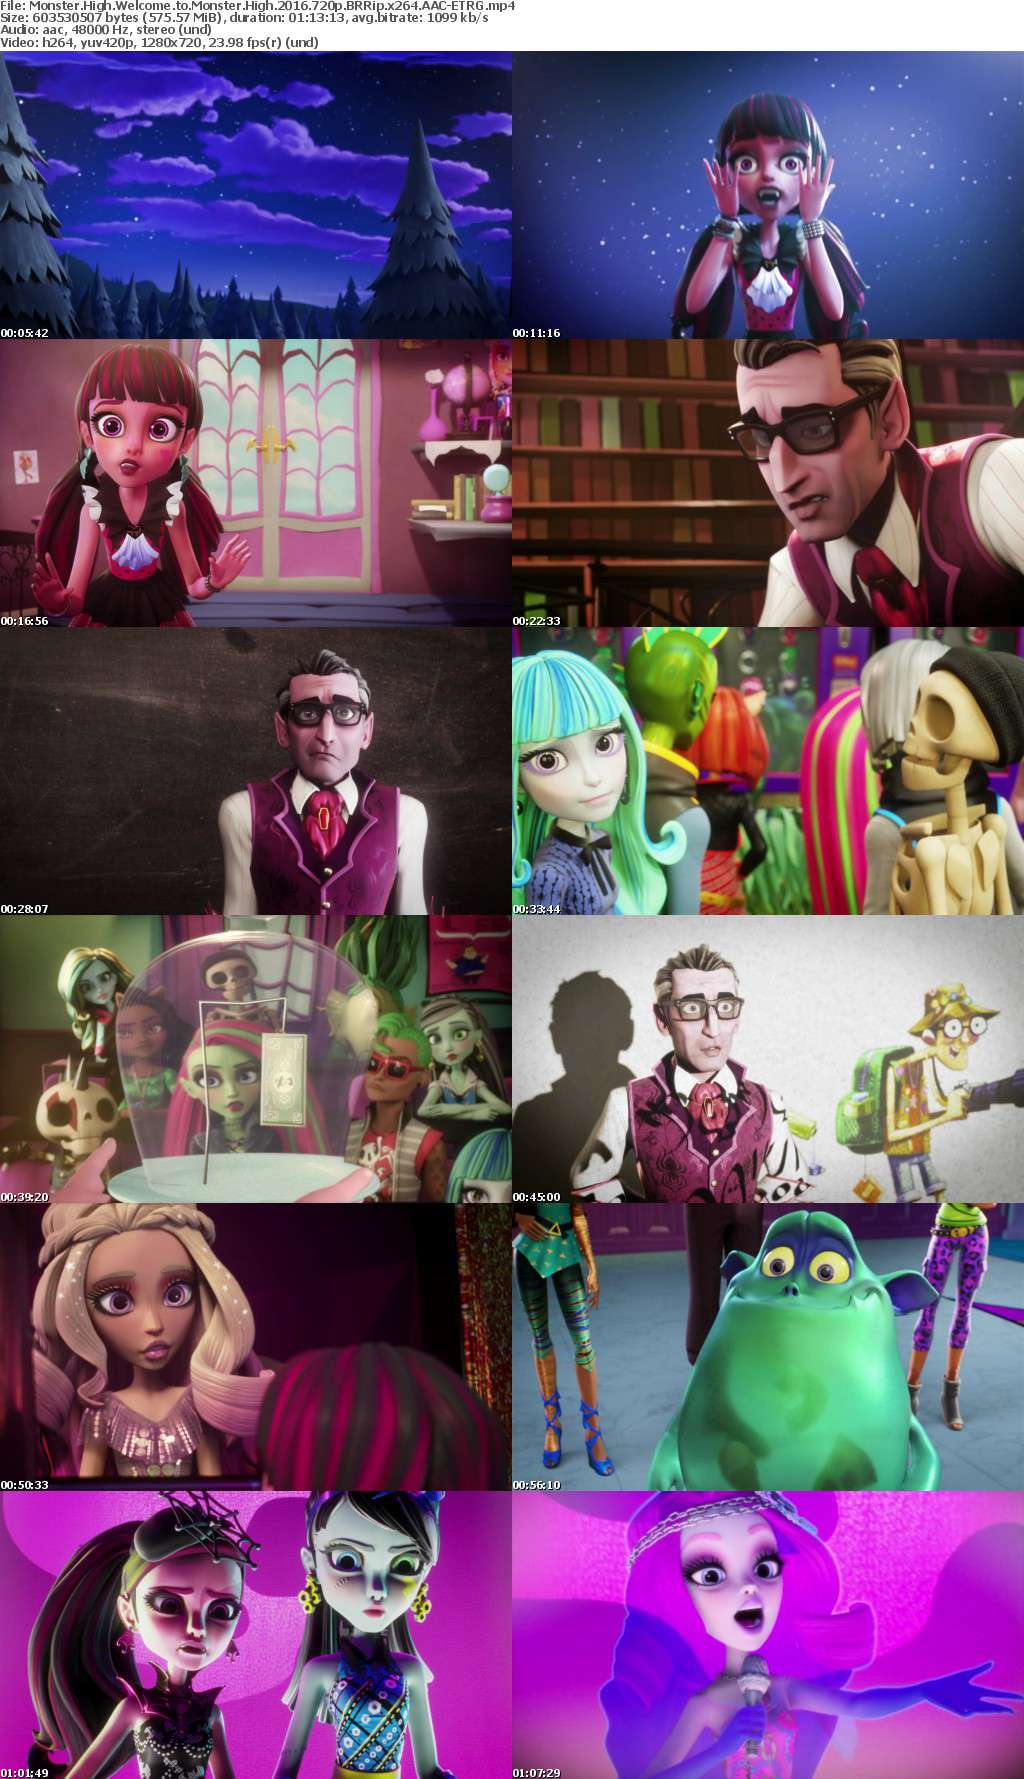 Monster High Welcome to Monster High 2016 720p BRRip x264 AAC ETRG